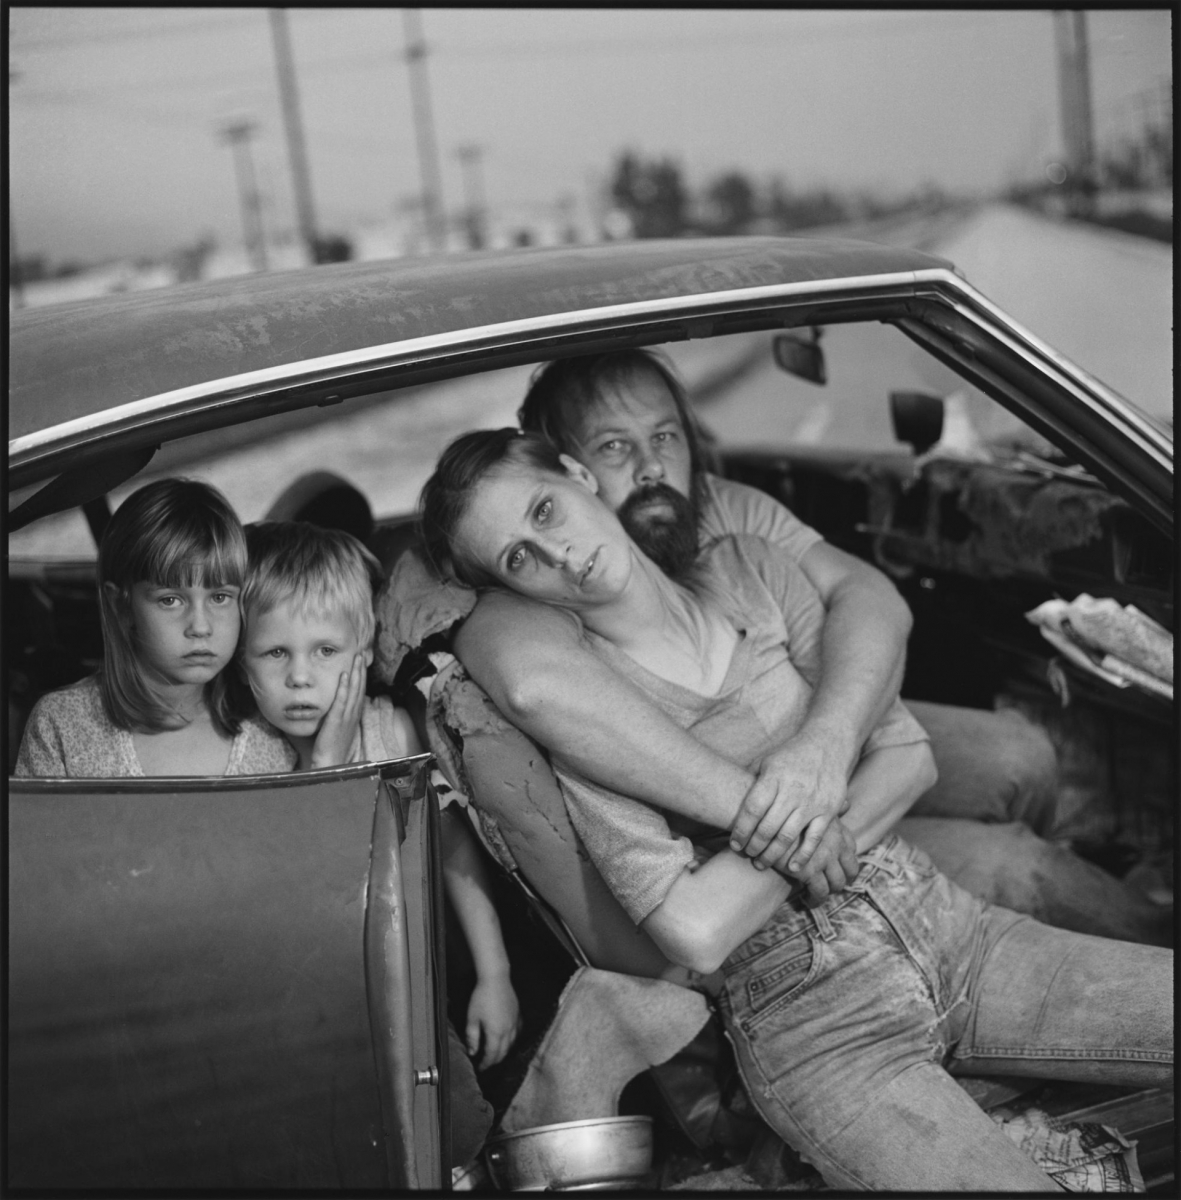 The Damm family in their car, Los Angeles, California, 1987